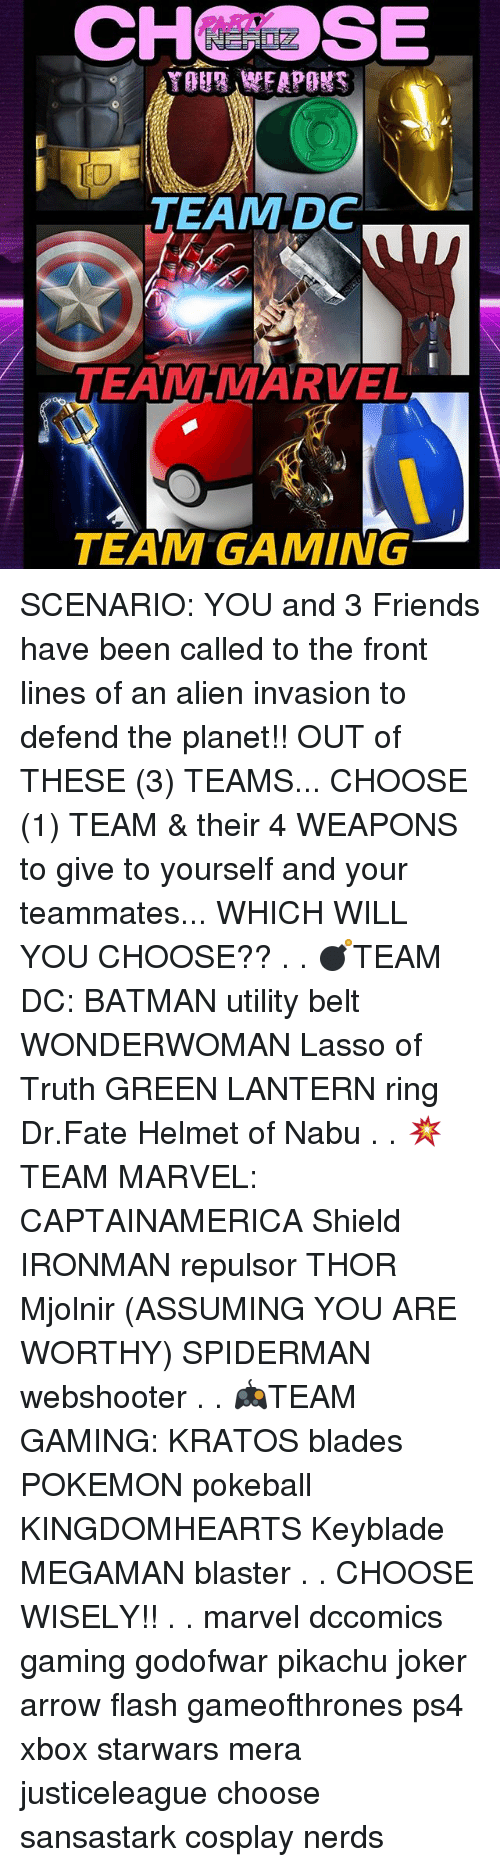 blaster: CHSE  IO  TEAM DC  TEAM MARVEL  TEAM GAMING SCENARIO: YOU and 3 Friends have been called to the front lines of an alien invasion to defend the planet!! OUT of THESE (3) TEAMS... CHOOSE (1) TEAM & their 4 WEAPONS to give to yourself and your teammates... WHICH WILL YOU CHOOSE?? . . 💣TEAM DC: BATMAN utility belt WONDERWOMAN Lasso of Truth GREEN LANTERN ring Dr.Fate Helmet of Nabu . . 💥TEAM MARVEL: CAPTAINAMERICA Shield IRONMAN repulsor THOR Mjolnir (ASSUMING YOU ARE WORTHY) SPIDERMAN webshooter . . 🎮TEAM GAMING: KRATOS blades POKEMON pokeball KINGDOMHEARTS Keyblade MEGAMAN blaster . . CHOOSE WISELY!! . . marvel dccomics gaming godofwar pikachu joker arrow flash gameofthrones ps4 xbox starwars mera justiceleague choose sansastark cosplay nerds